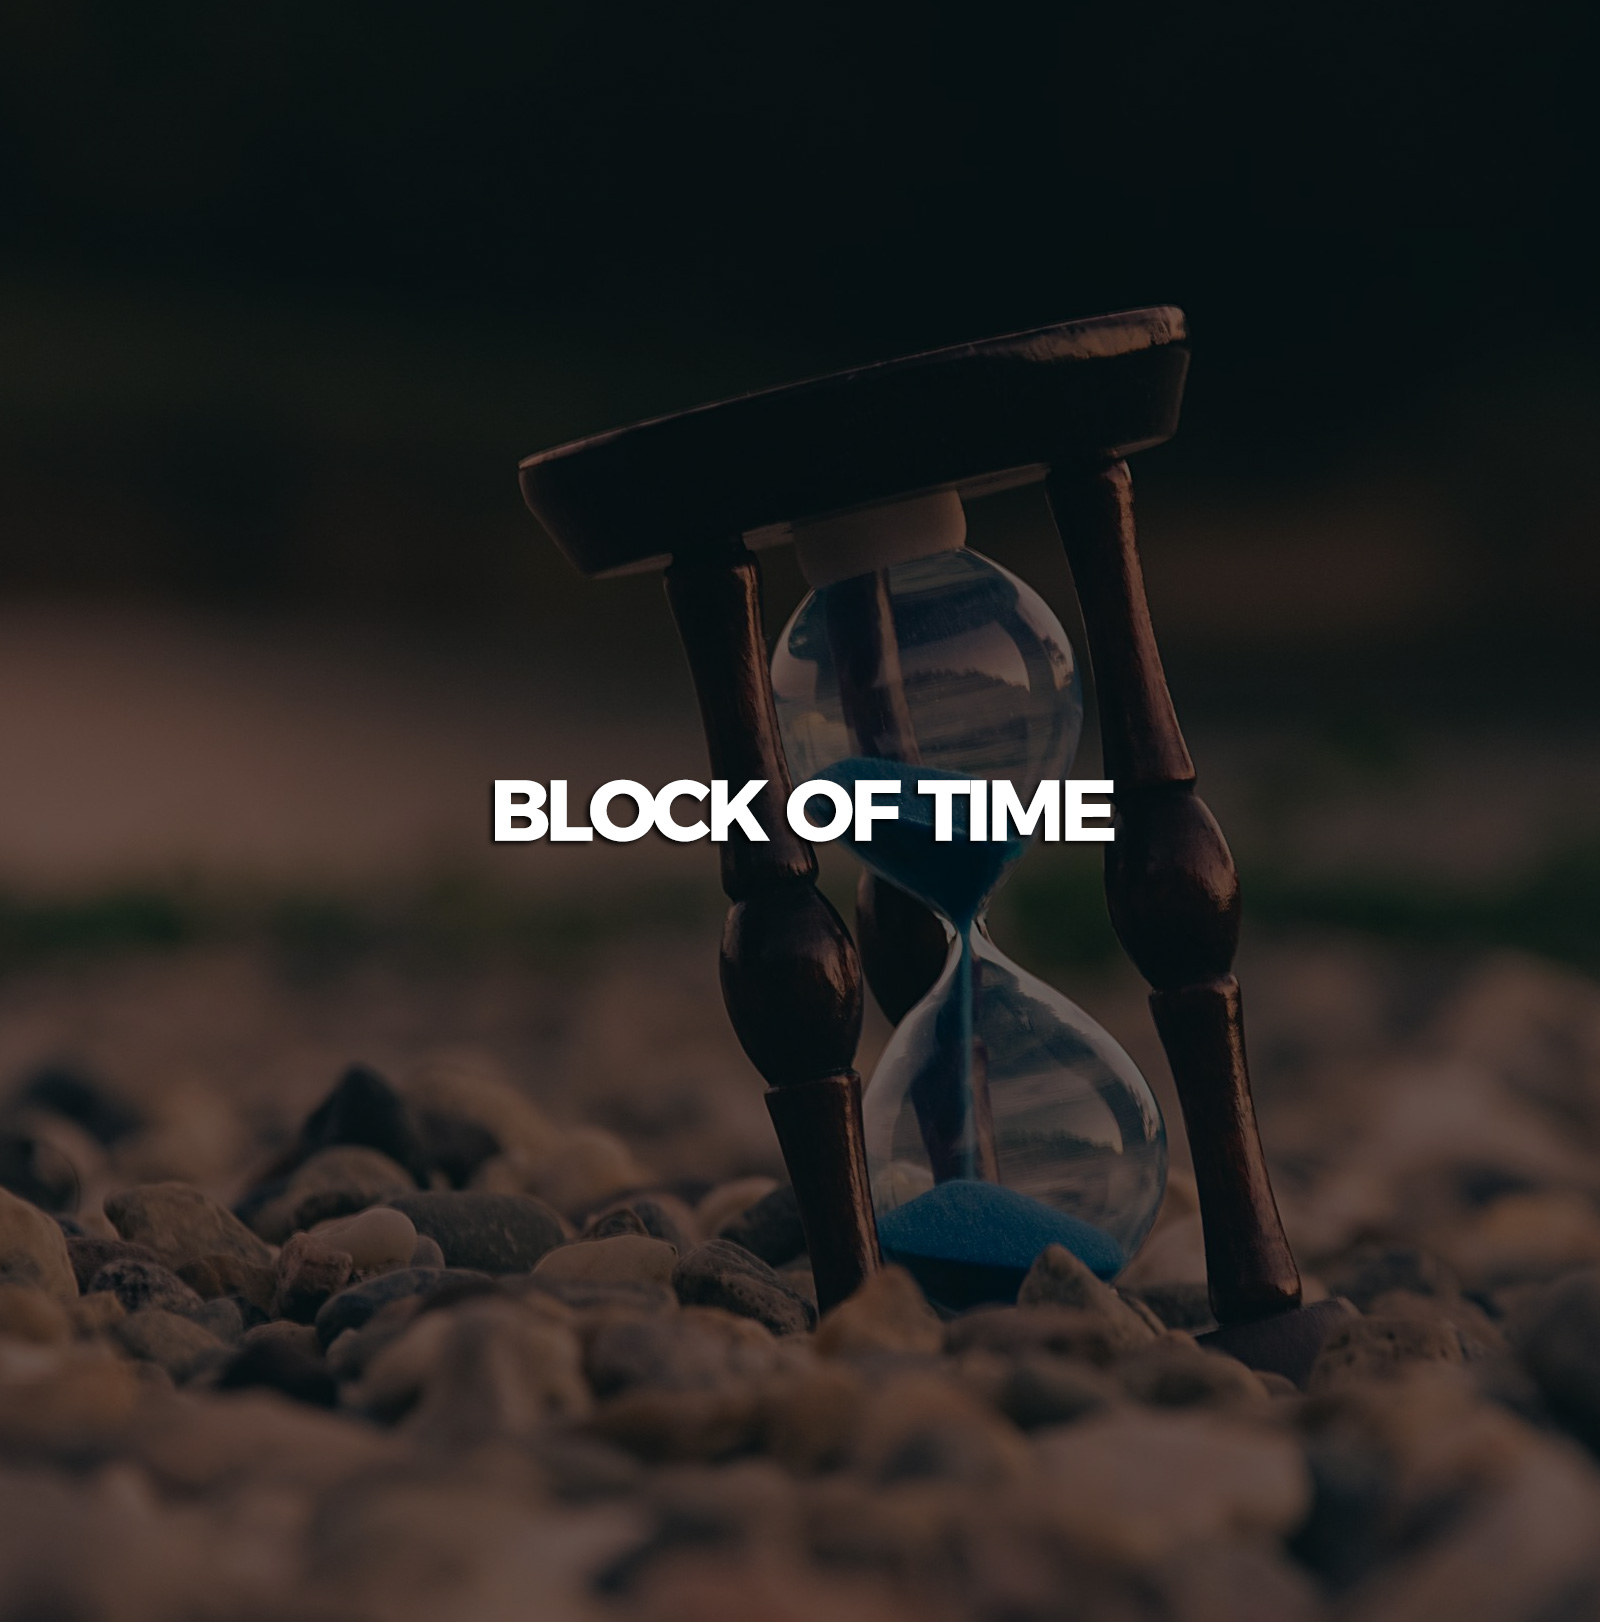 Block-of-time